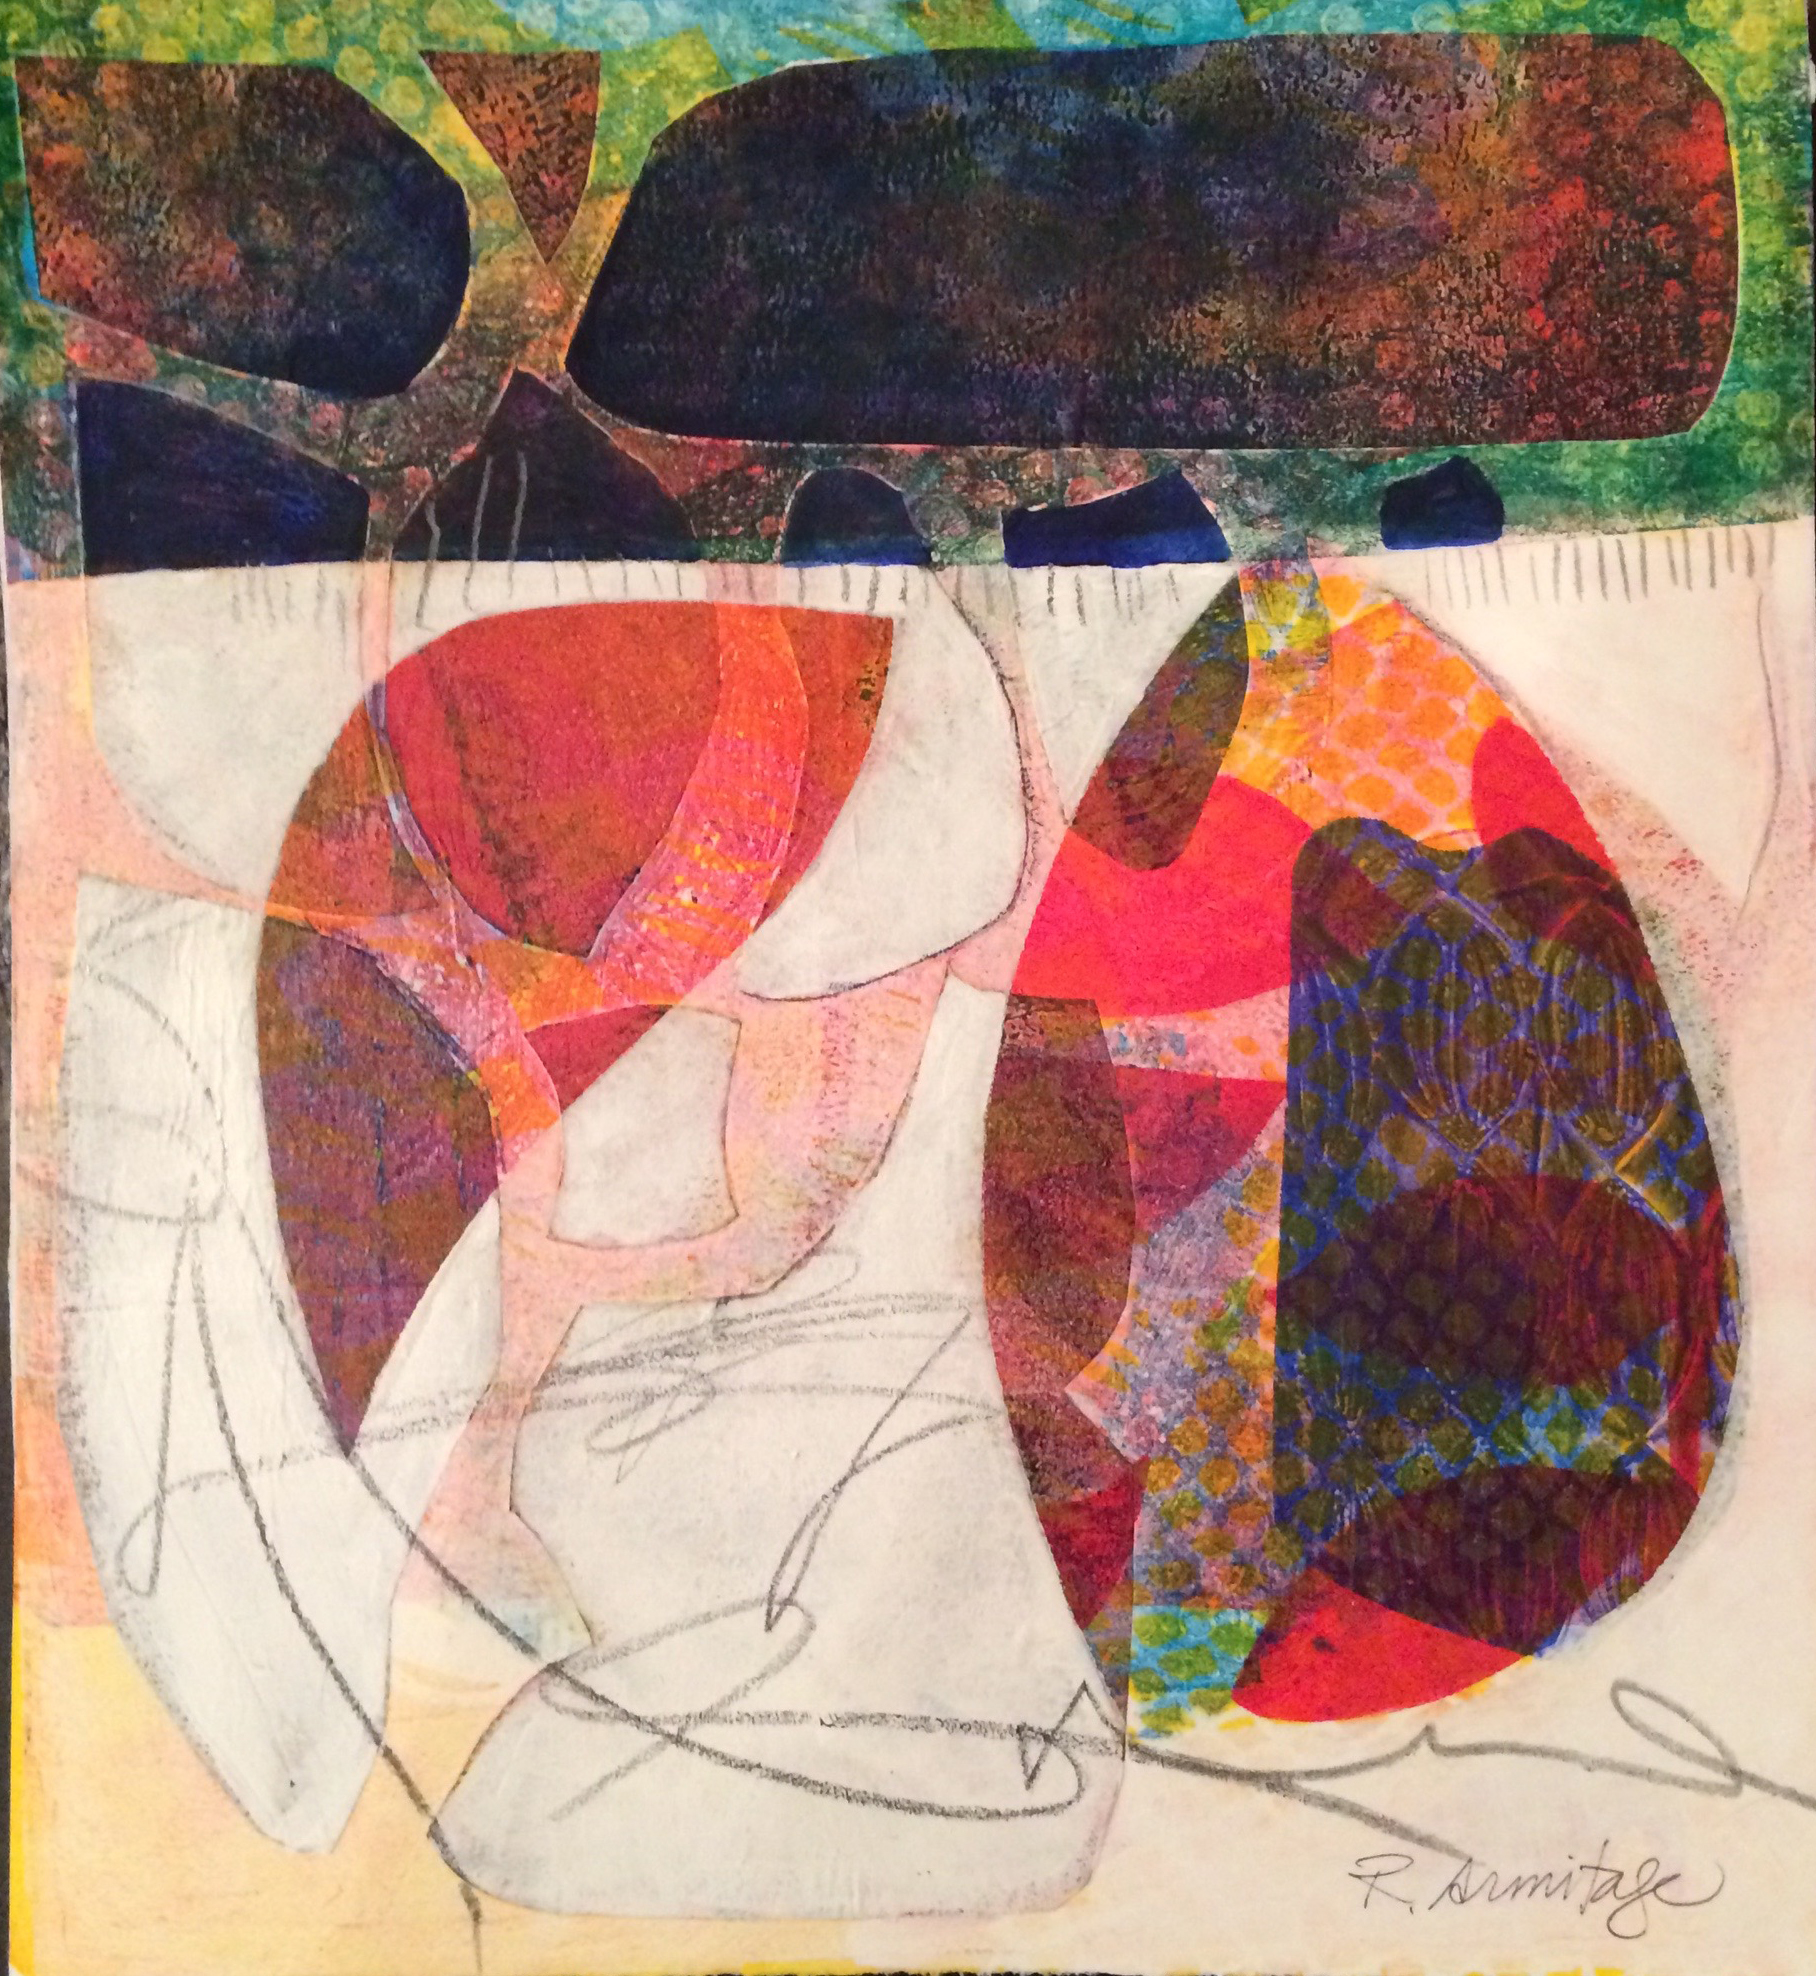 Monoprint Collage ©Ruth Armitage